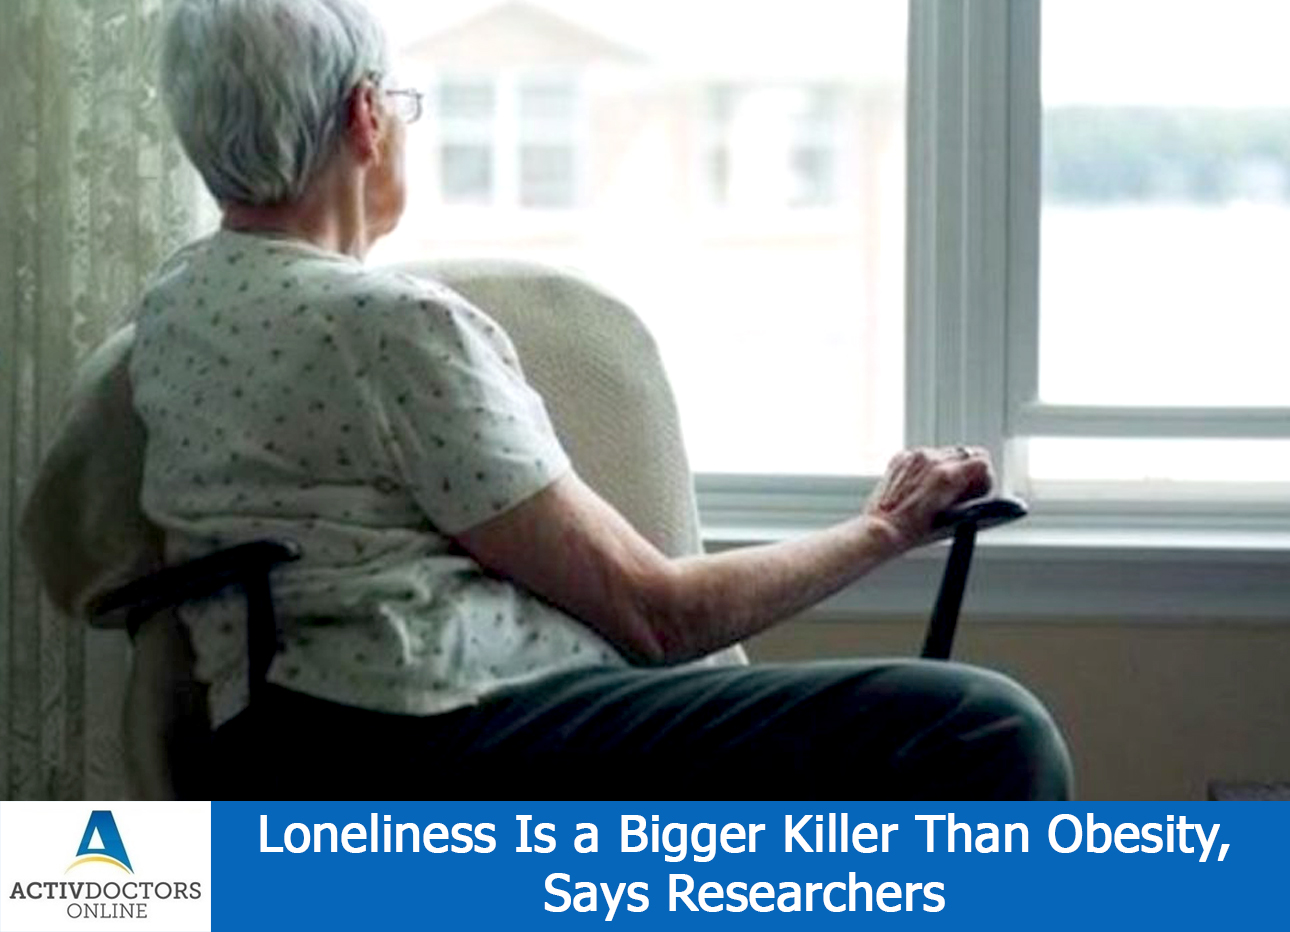 Loneliness Is a Bigger Killer Than Obesity, Says Researchers